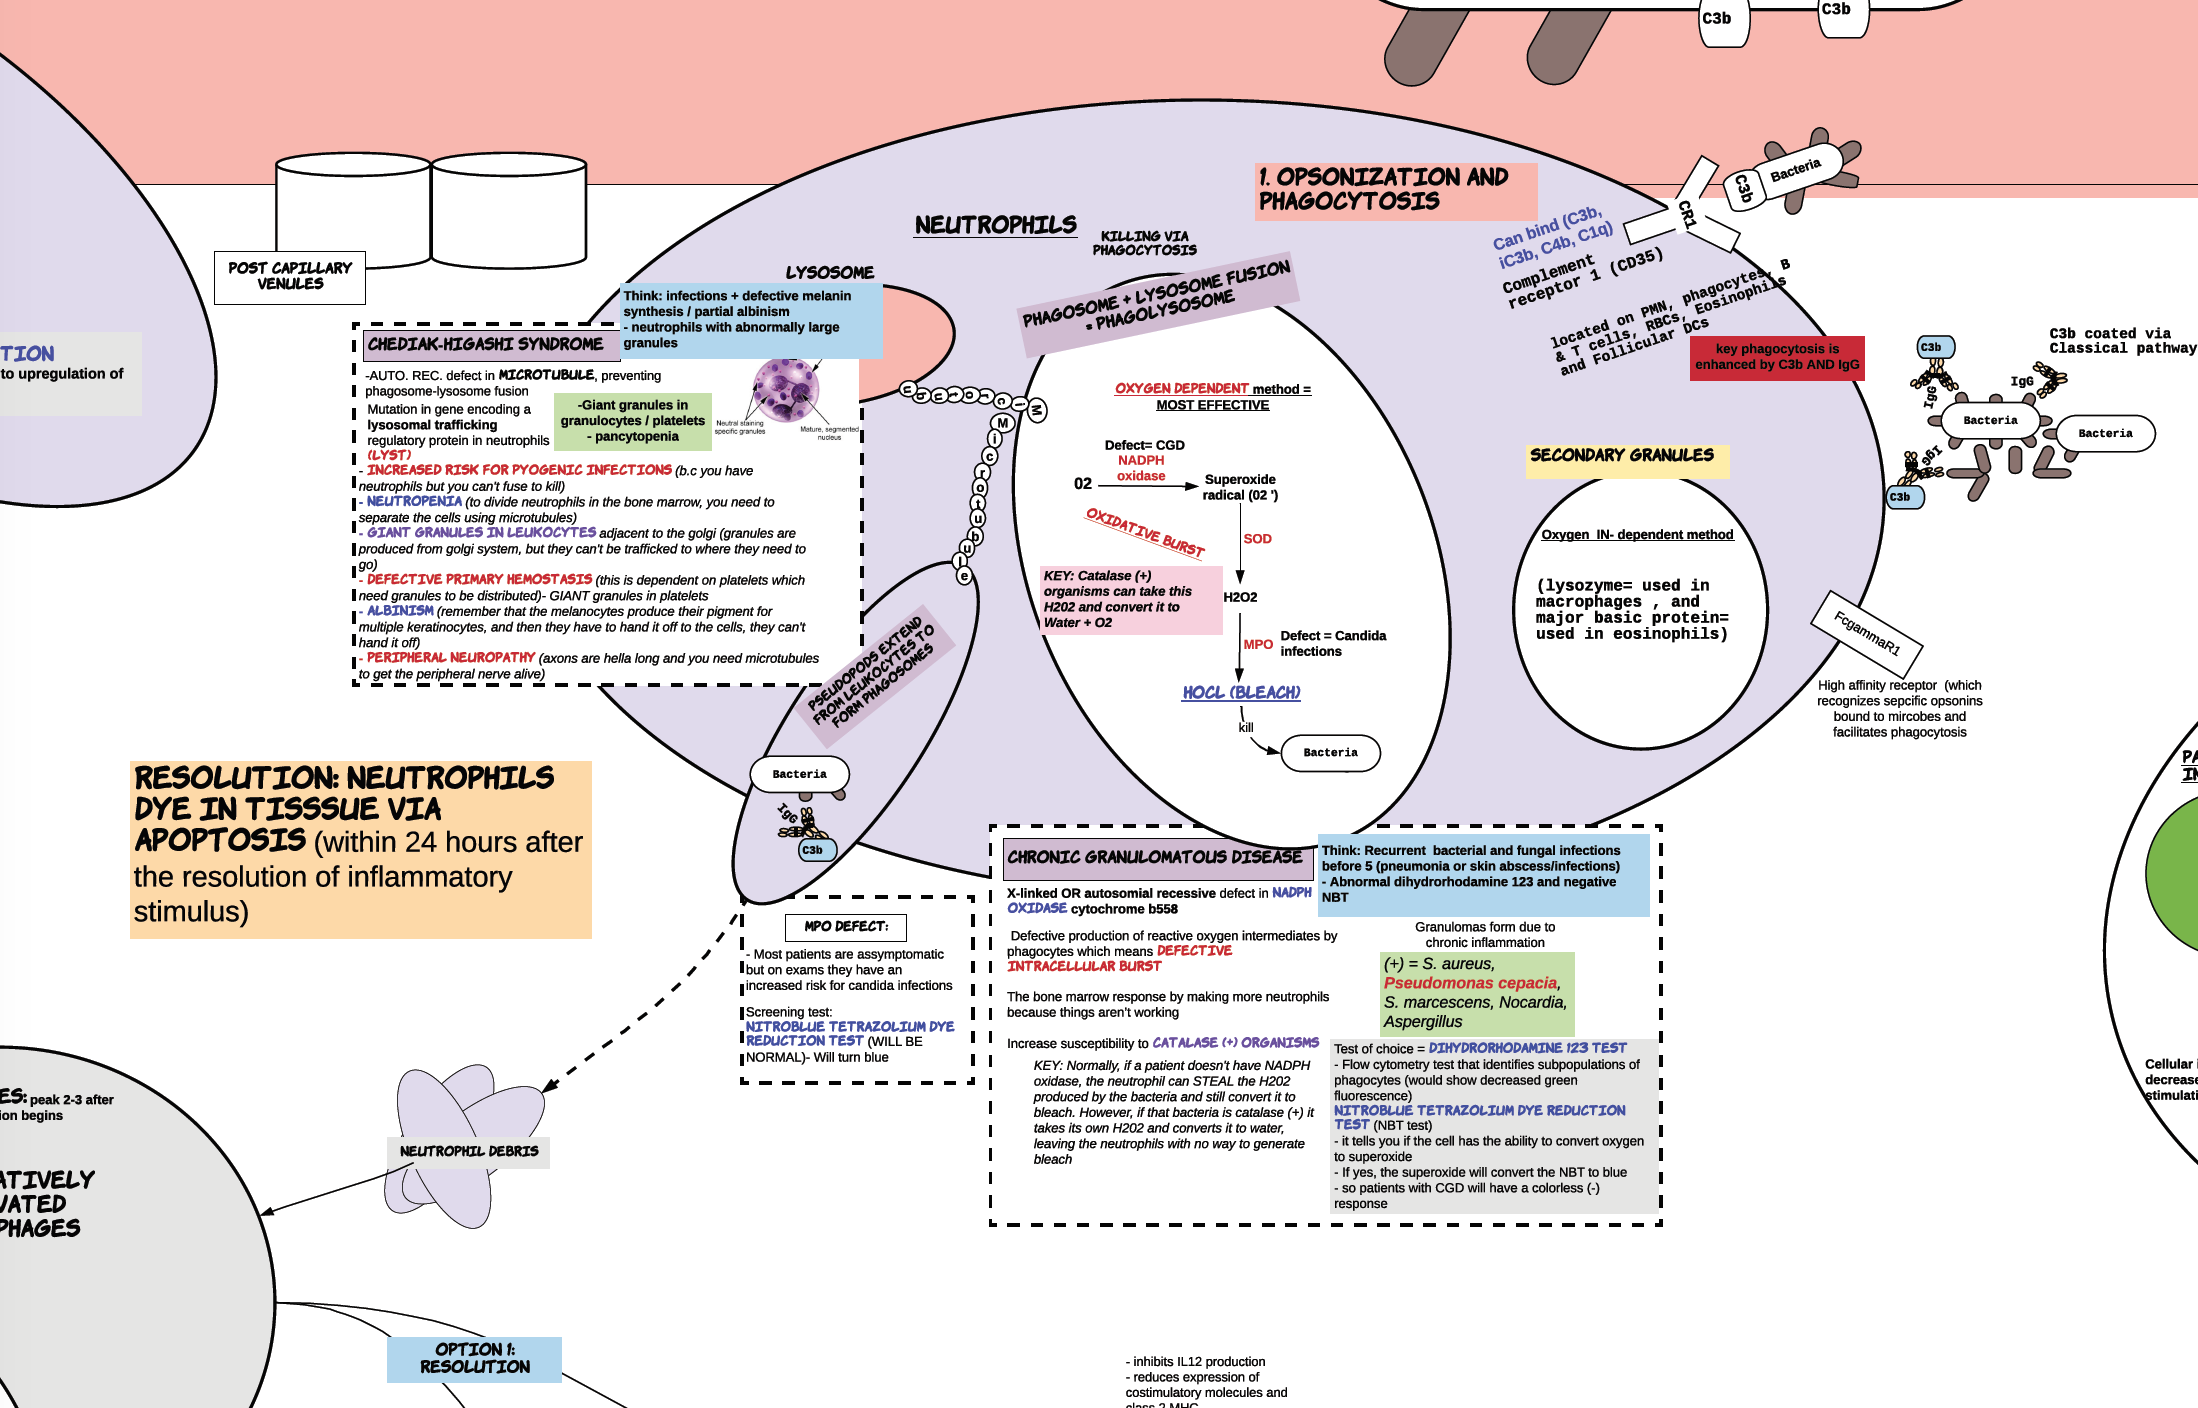 neutrophils in concept map